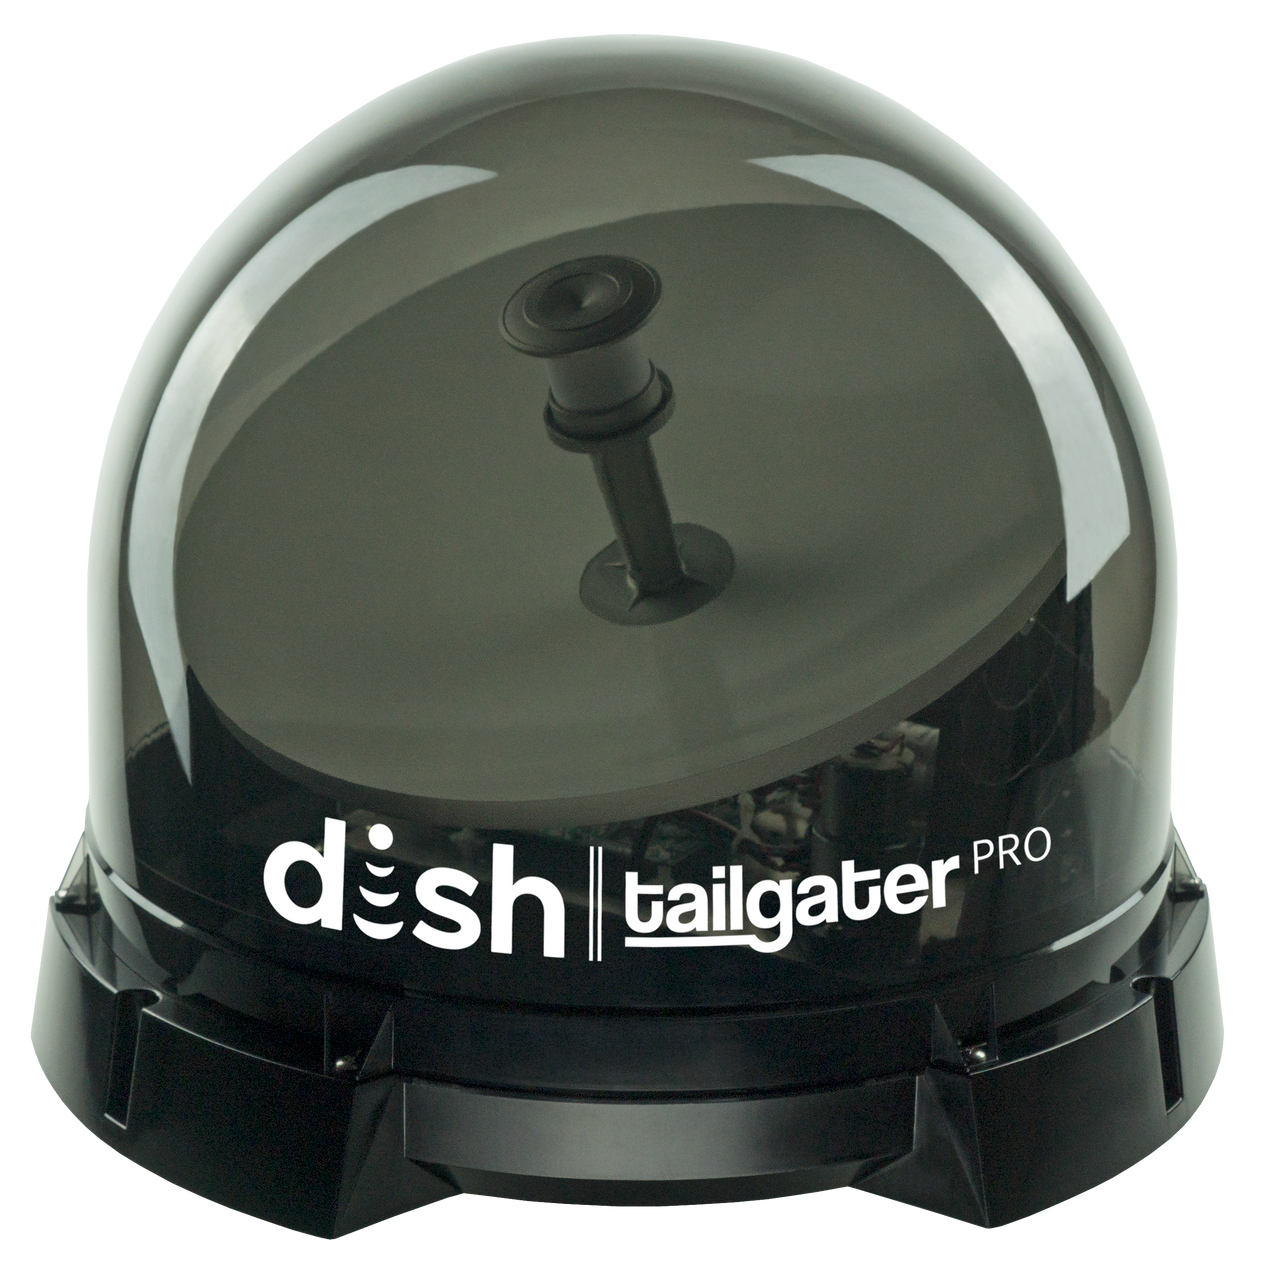 KING DISH Tailgater Pro Portable Satellite Dish - RV System for HD TV Anywhere